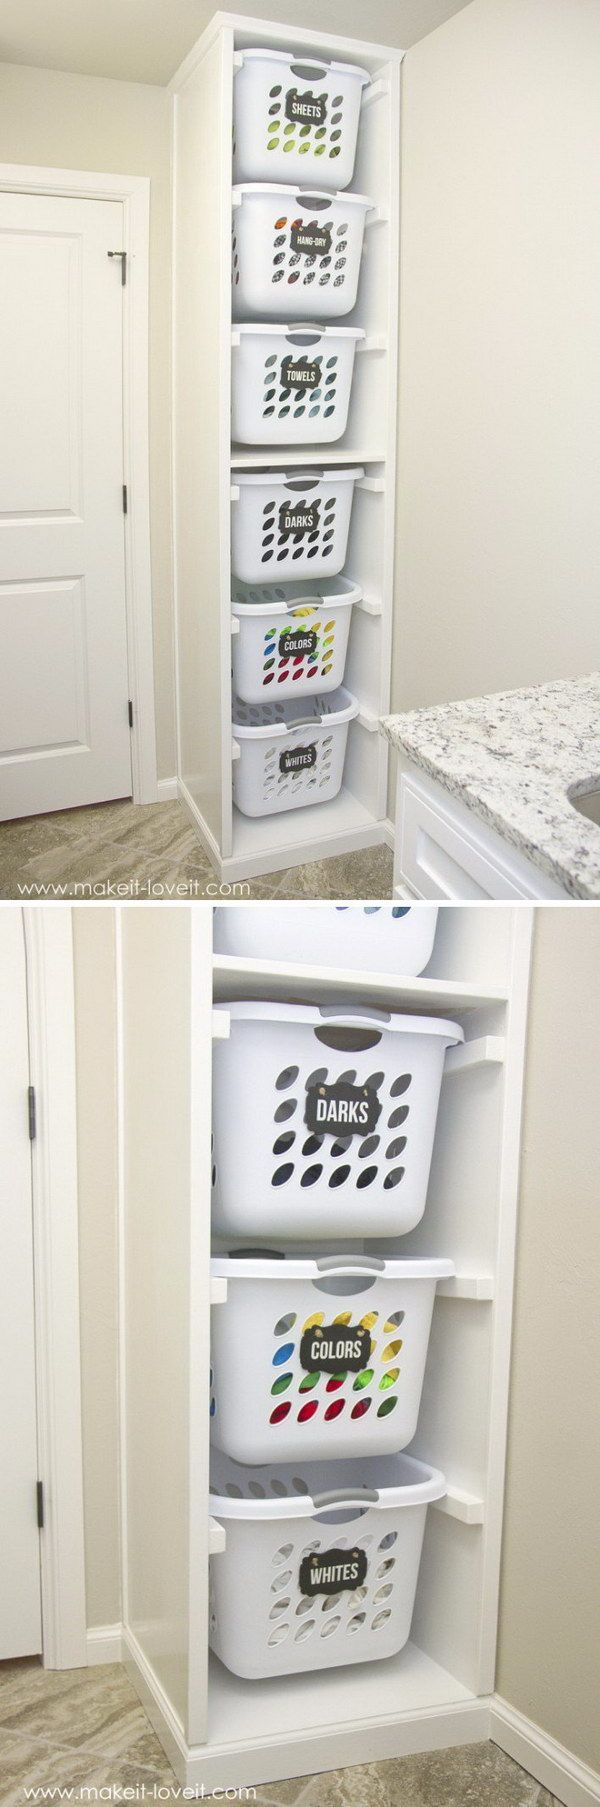 Photo of DIY Laundry Basket Organizer. More